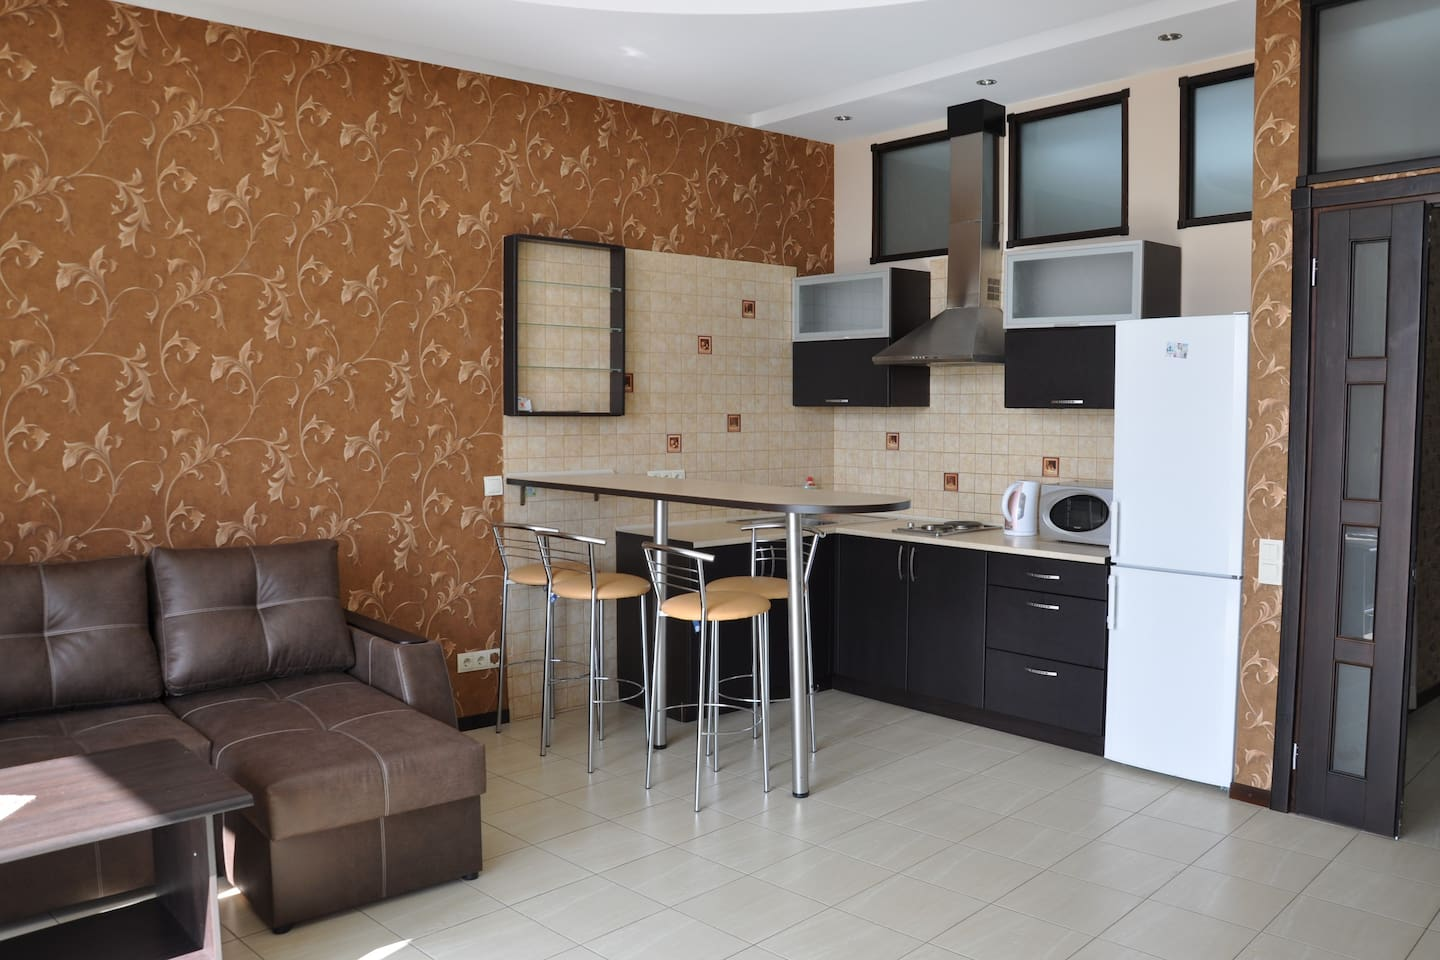 Living room and kitchen, pull out couch